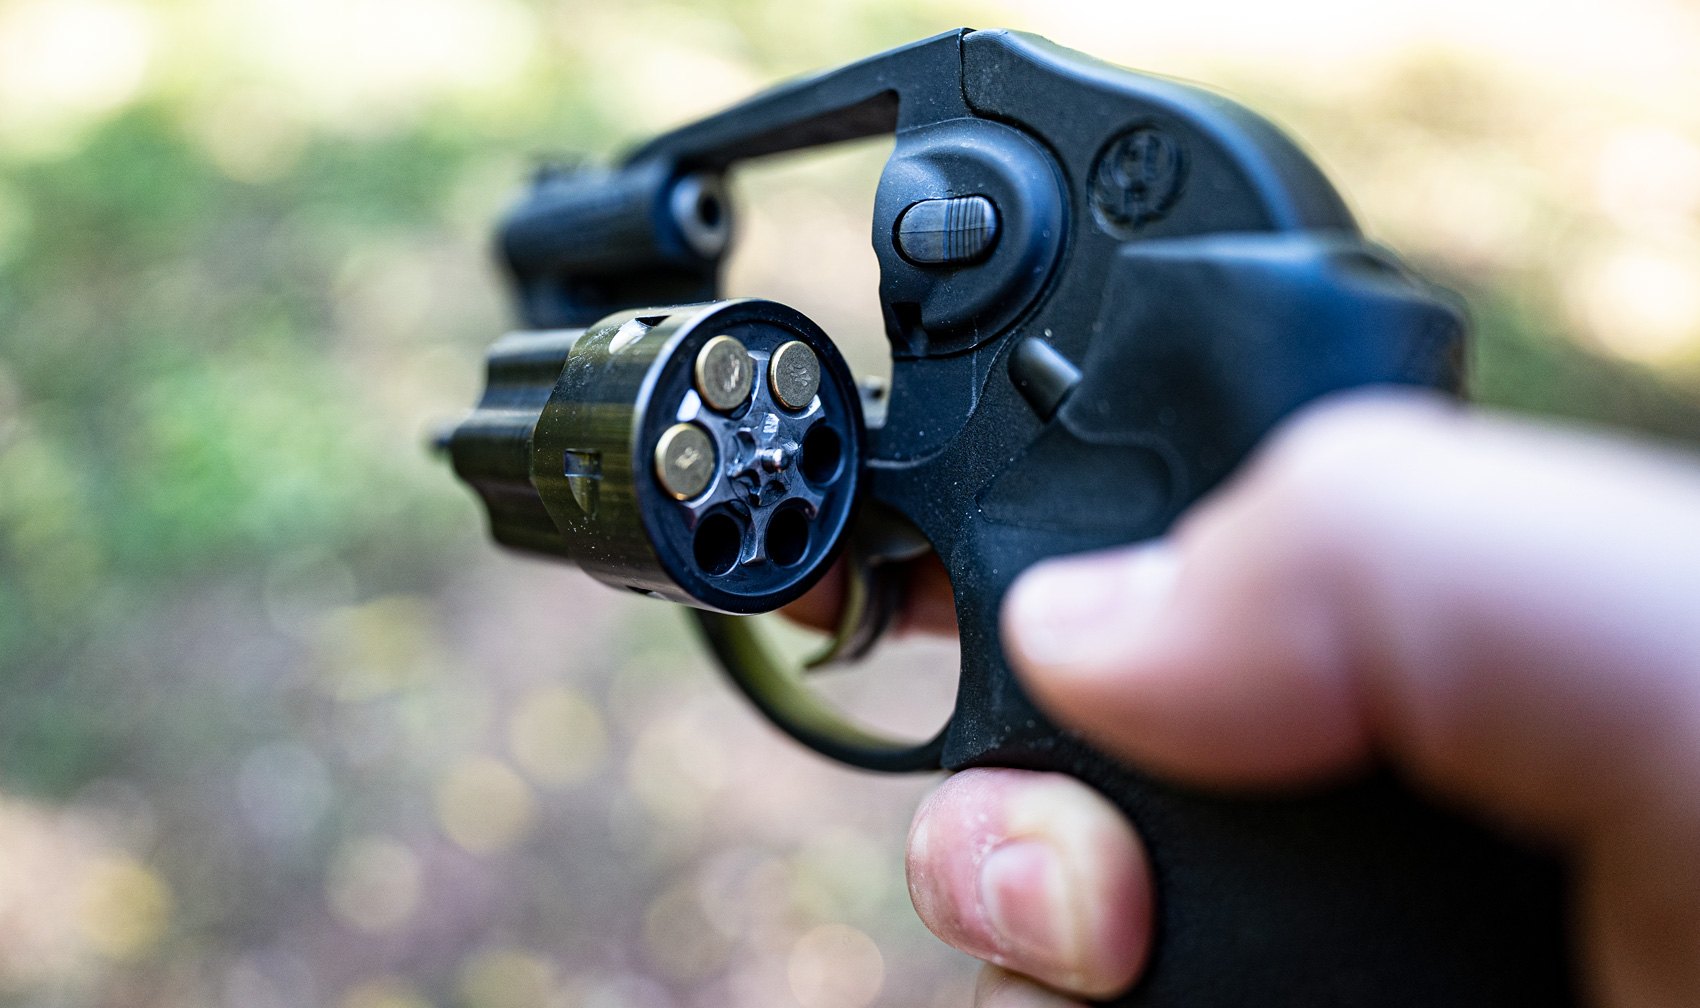 A revolver chambered for use with 22 magnum ammo